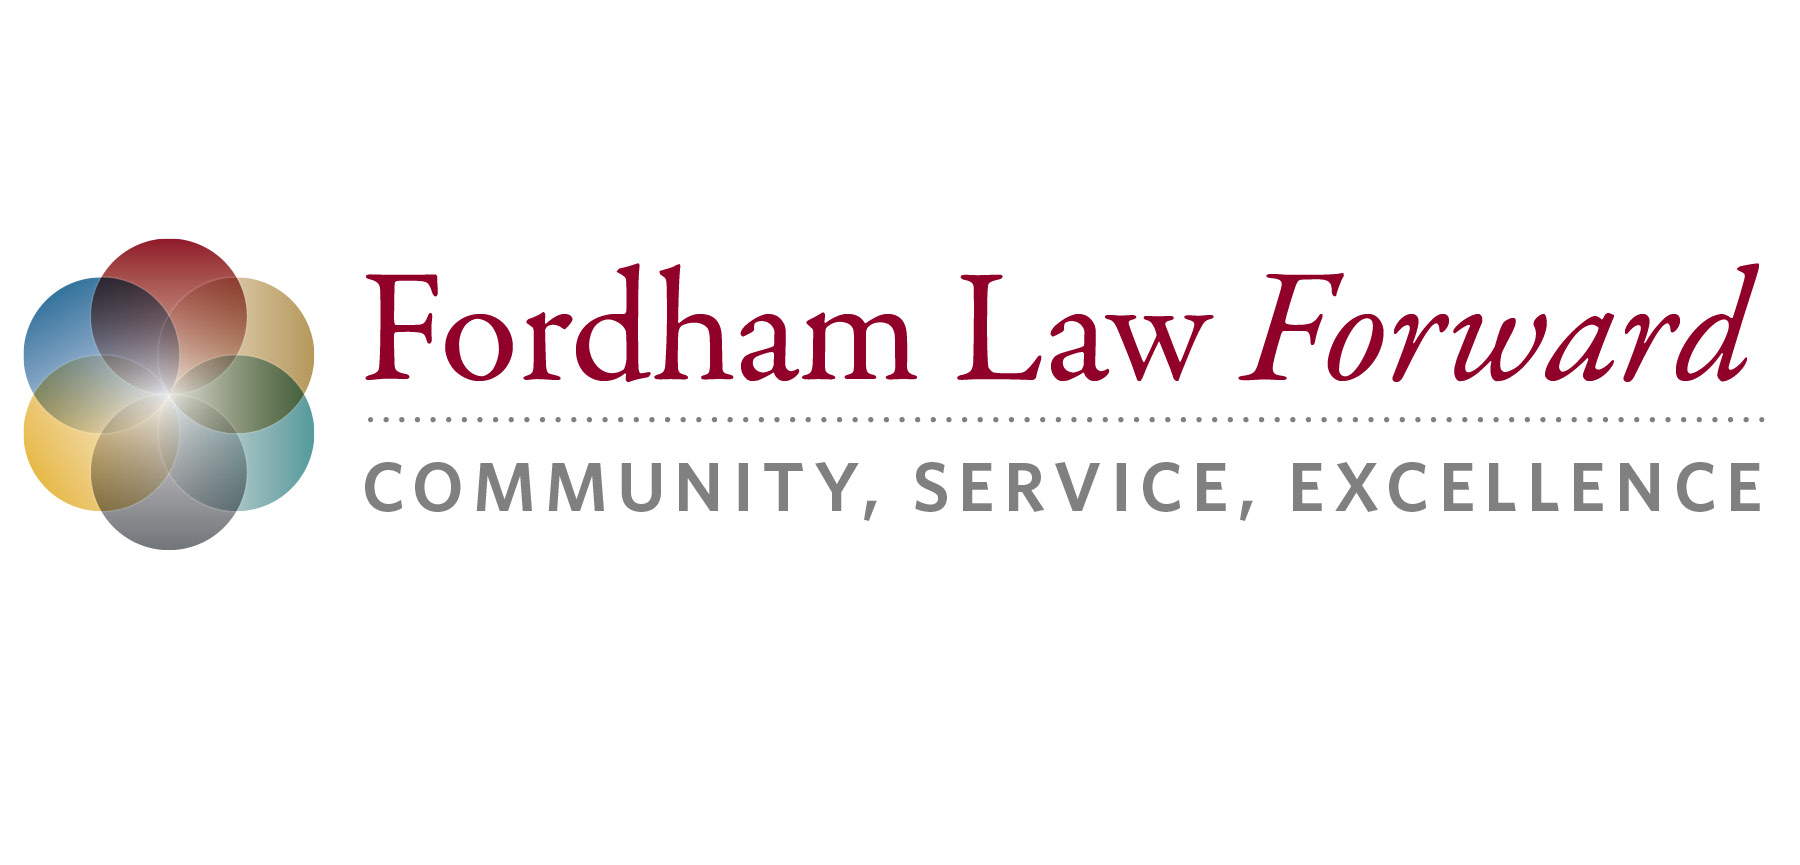 Fordham Law Strategic Plan Fordham Law Forward